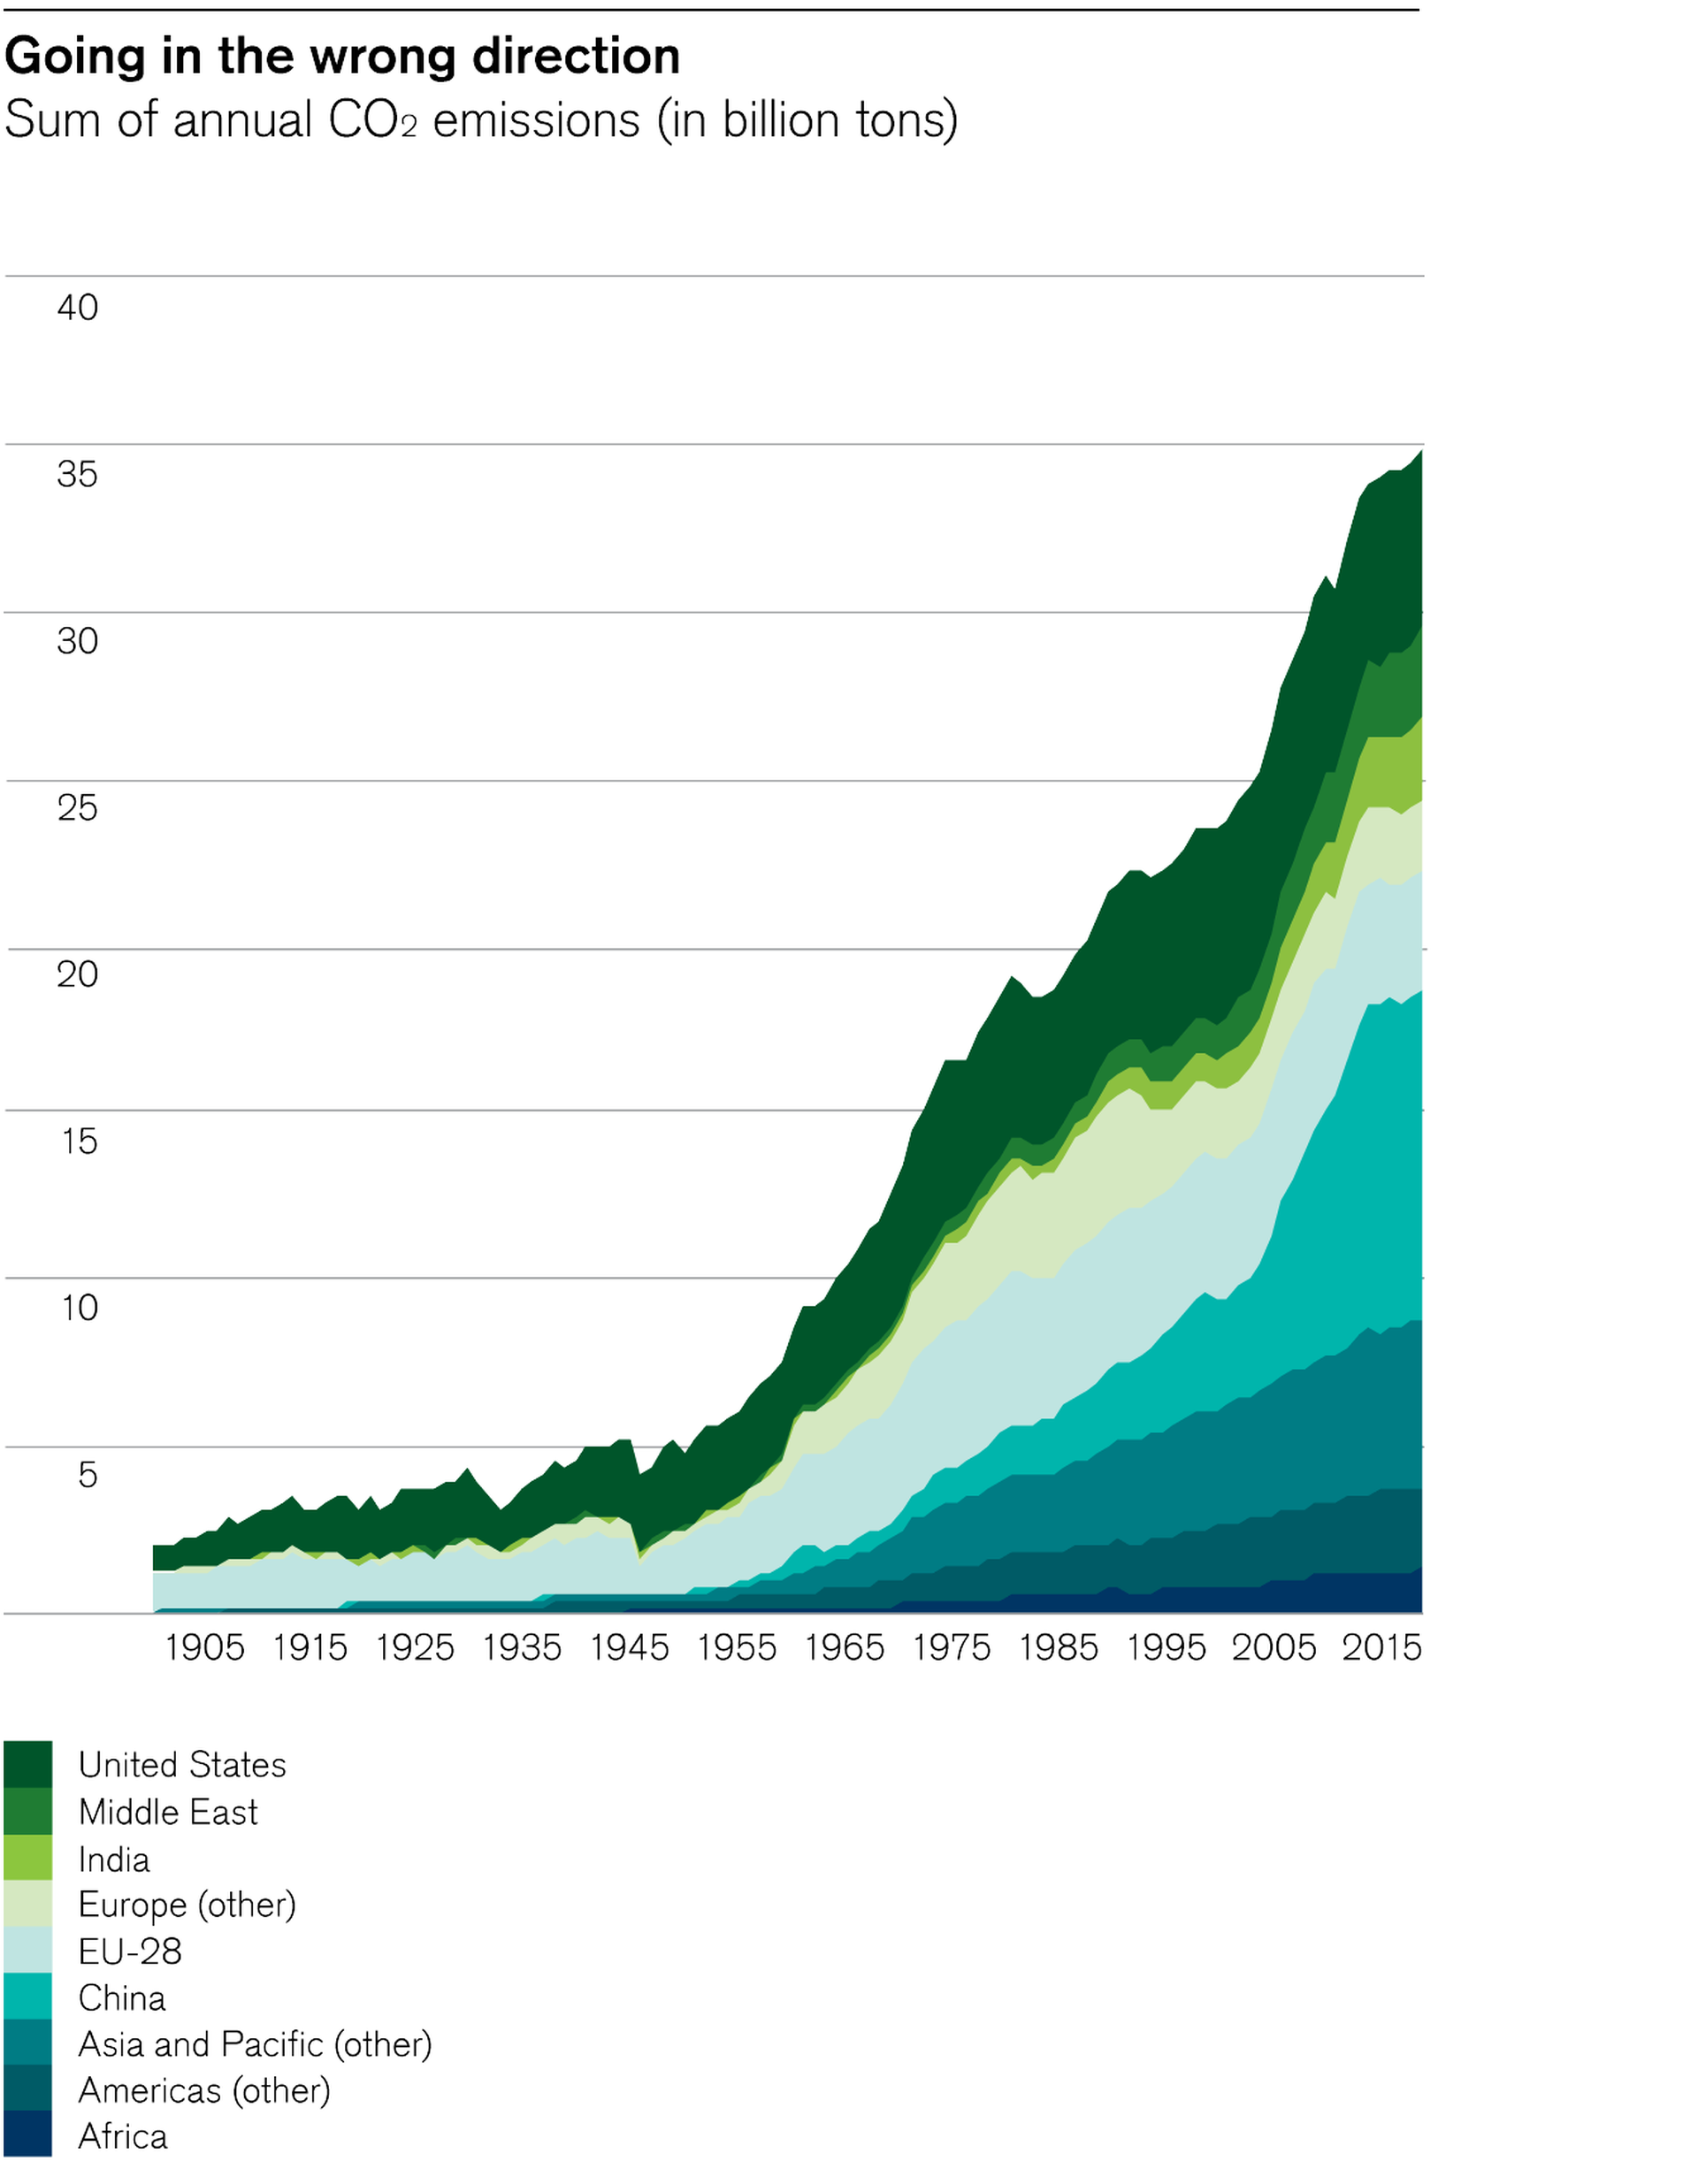 Sum of annual CO2 emissions (in billion tons)